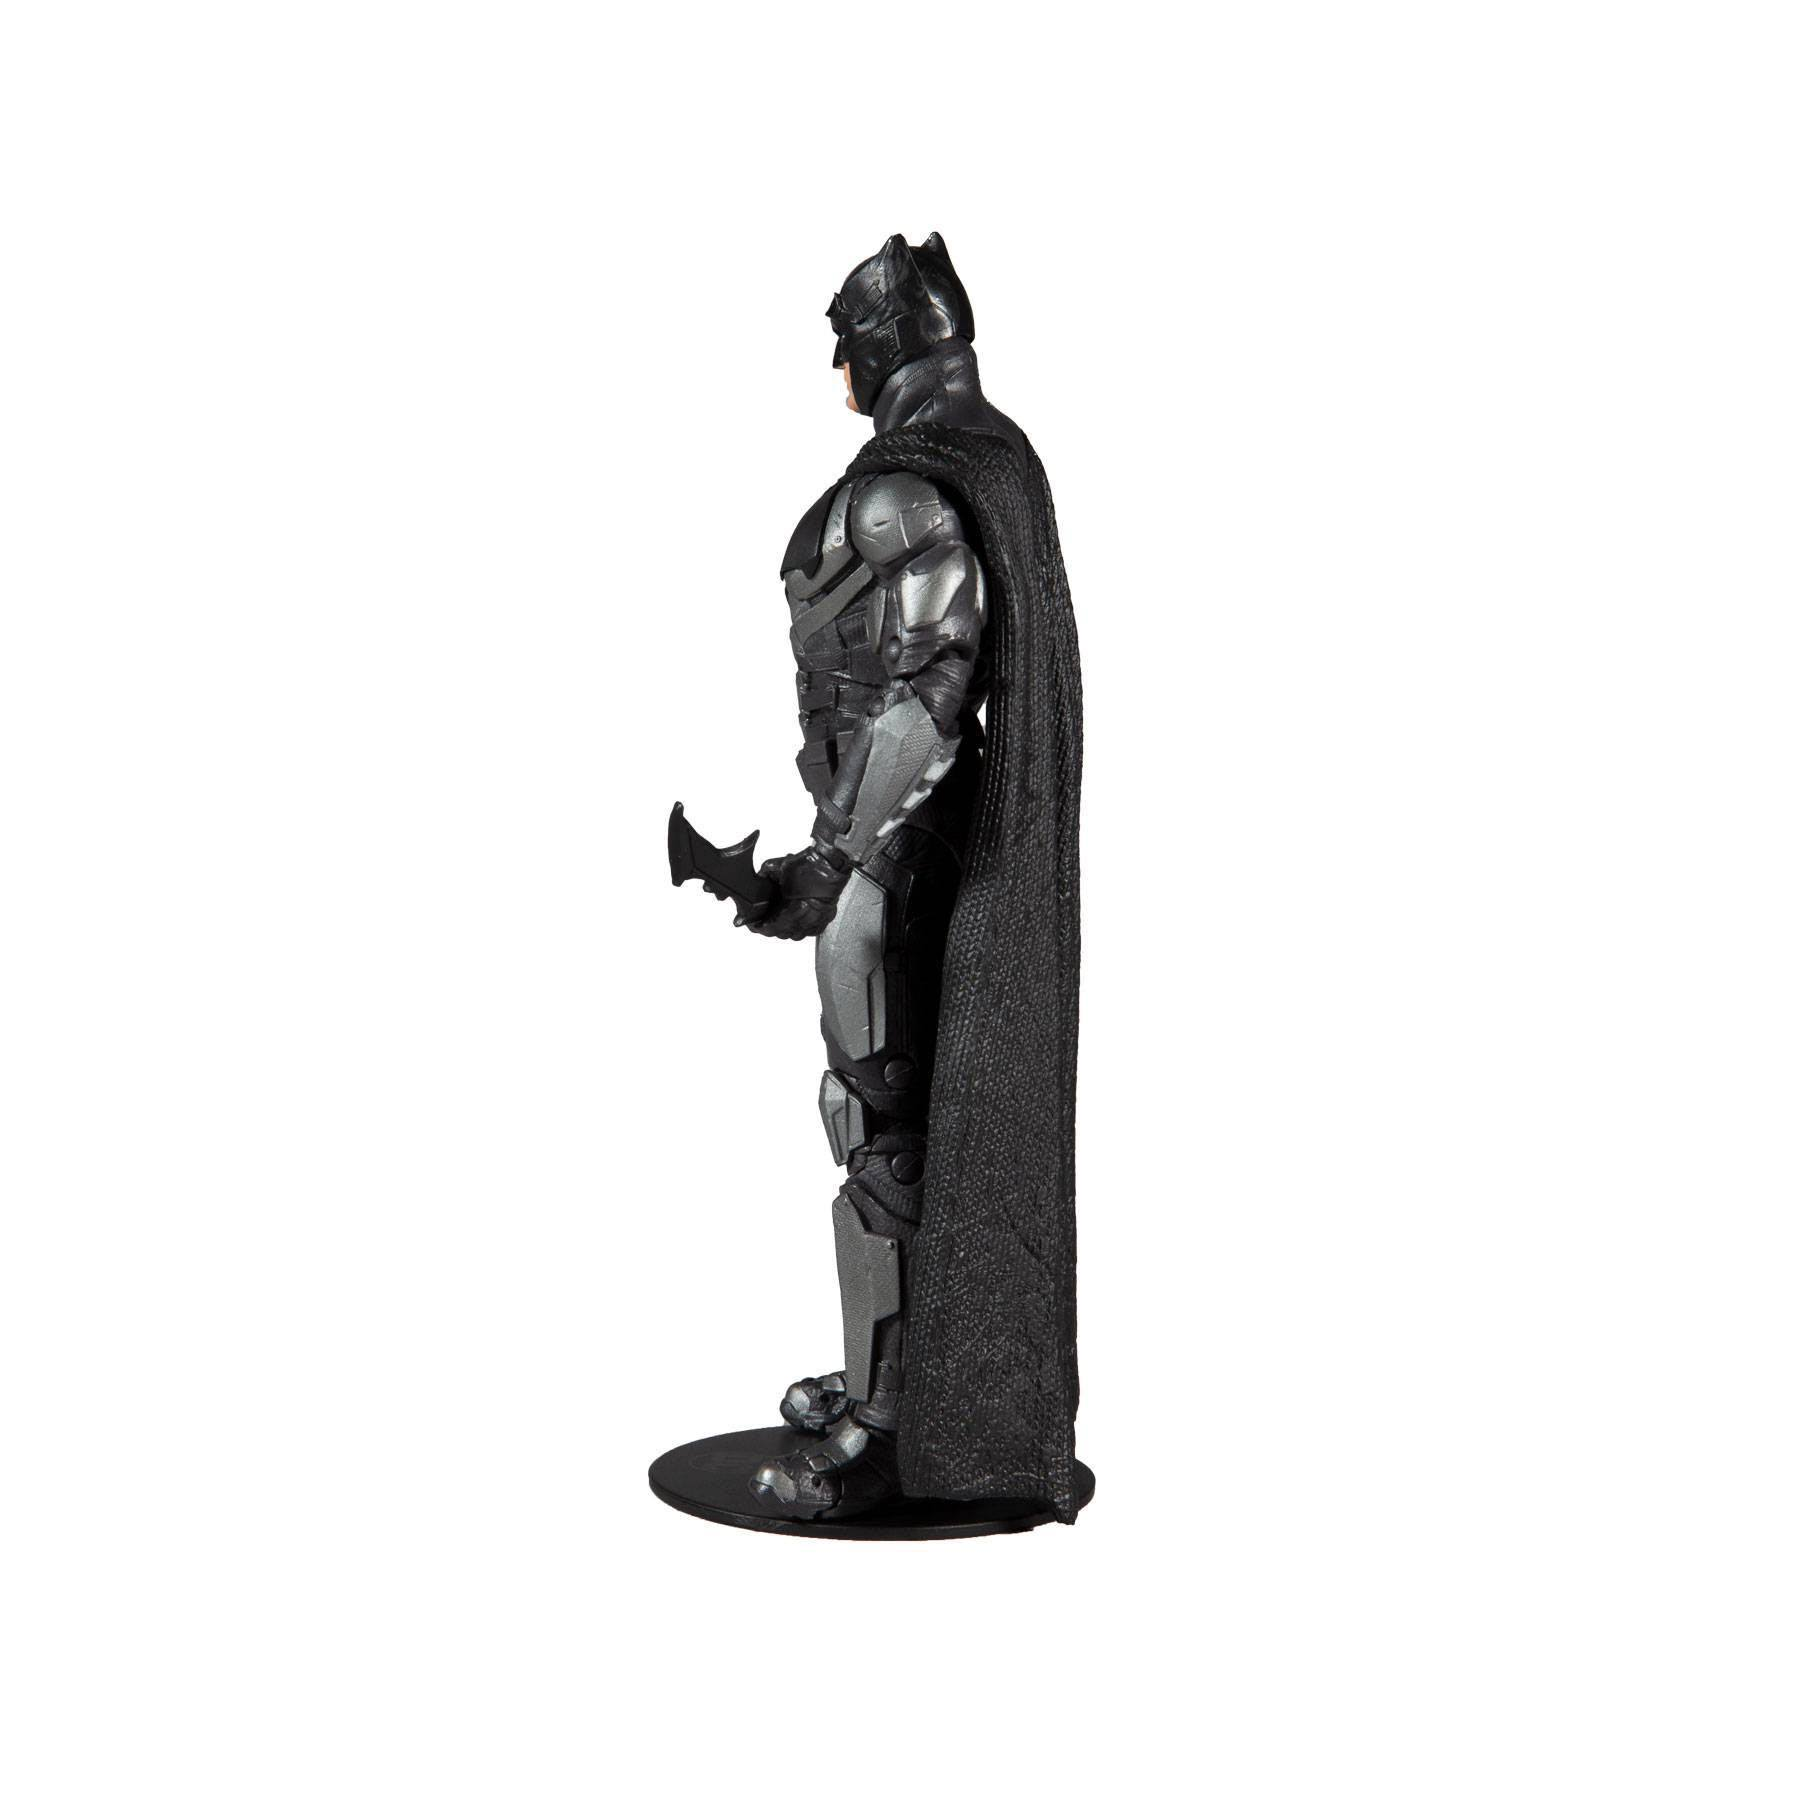 DC Justice League Movie Actionfigur Batman 18 cm MCF15092-6 787926150926